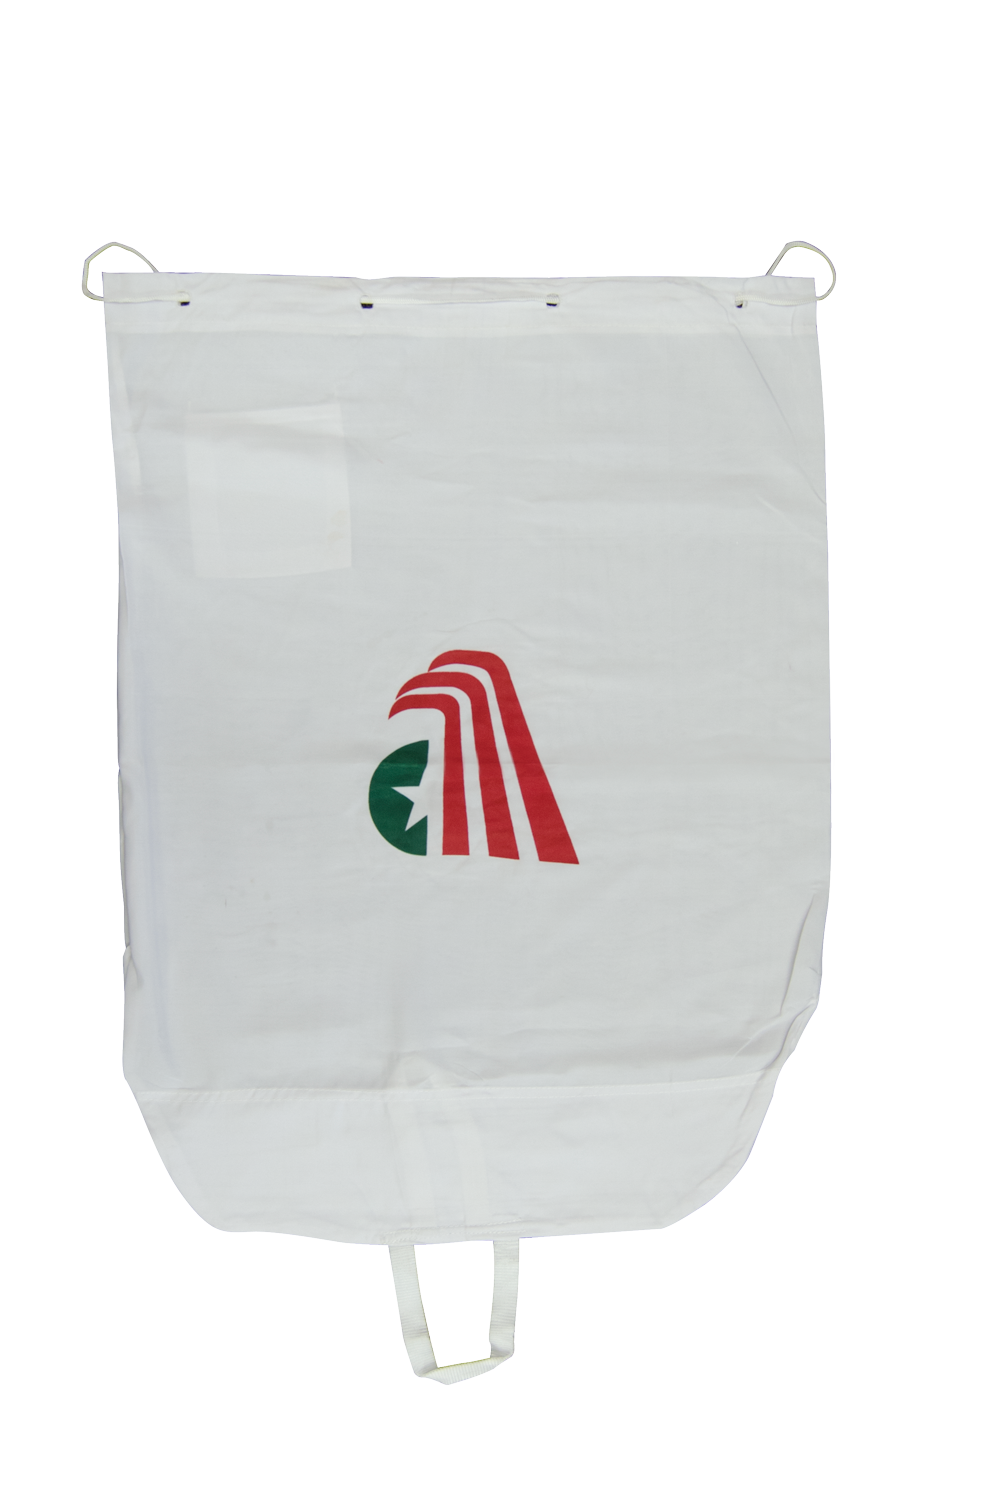 Ltsupply Com Polyester Laundry Route Bags